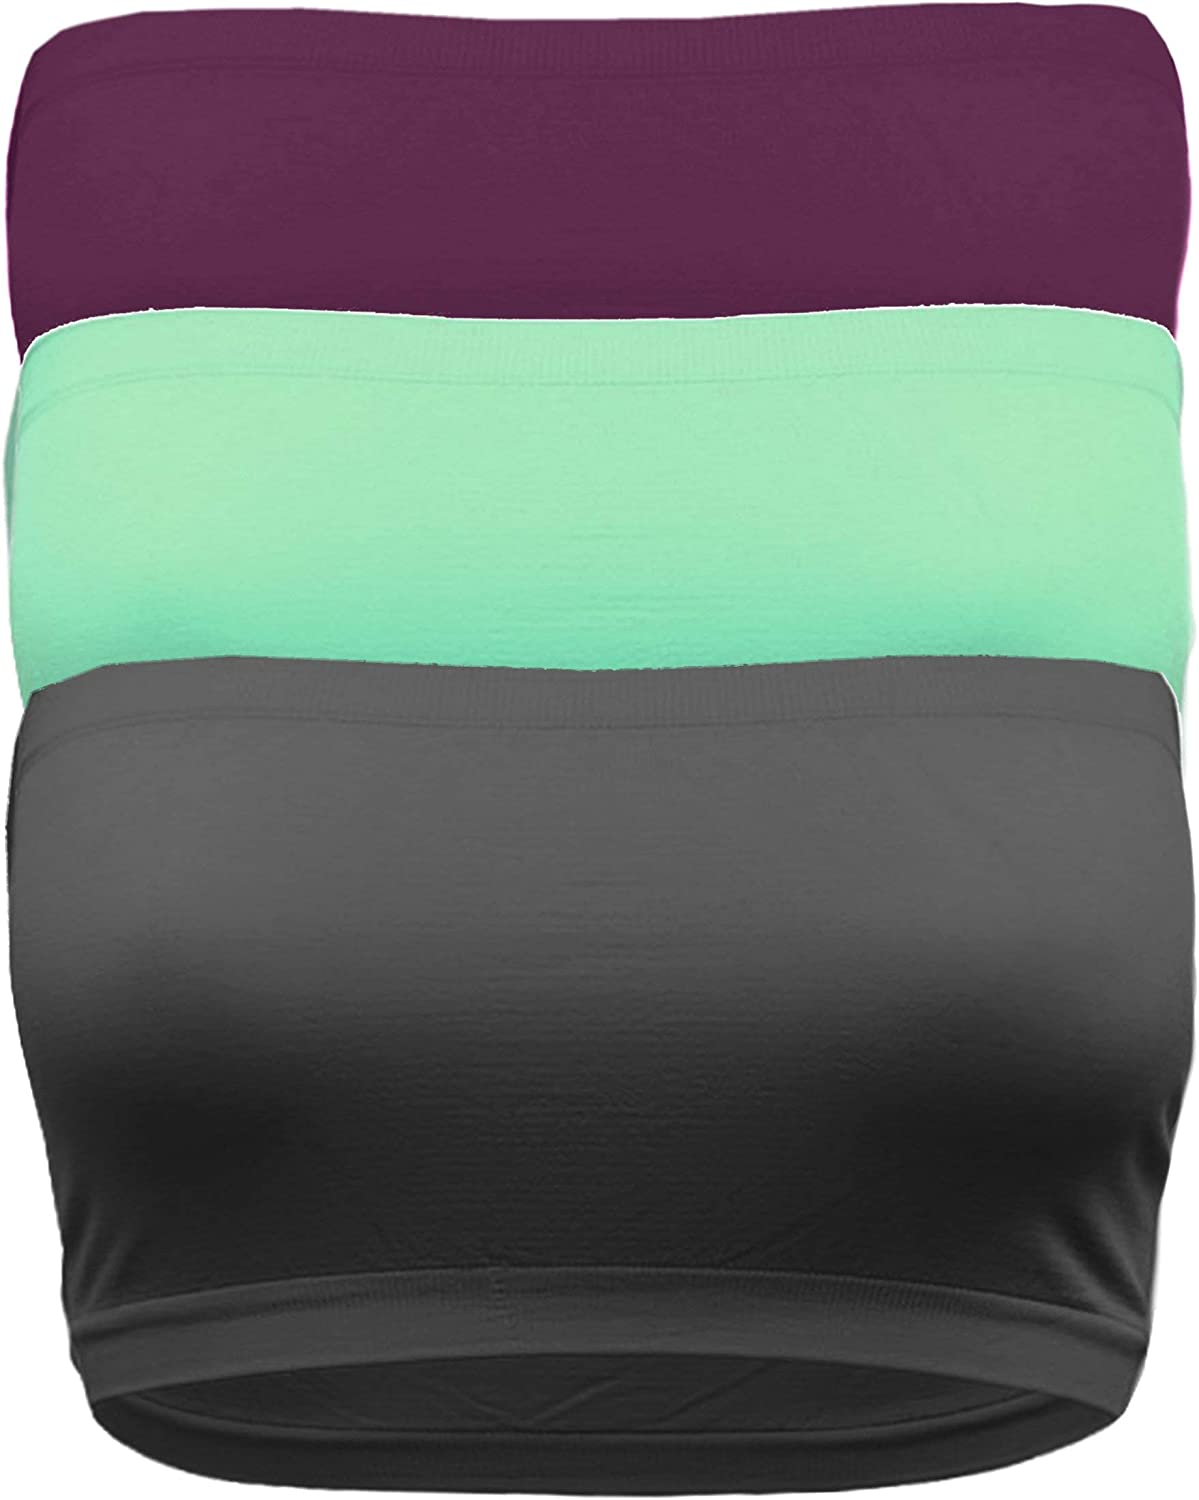 OLLIE ARNES Plus Size Bandeau Bra Tube Top Wirefree Seamless Strapless for Large Bust